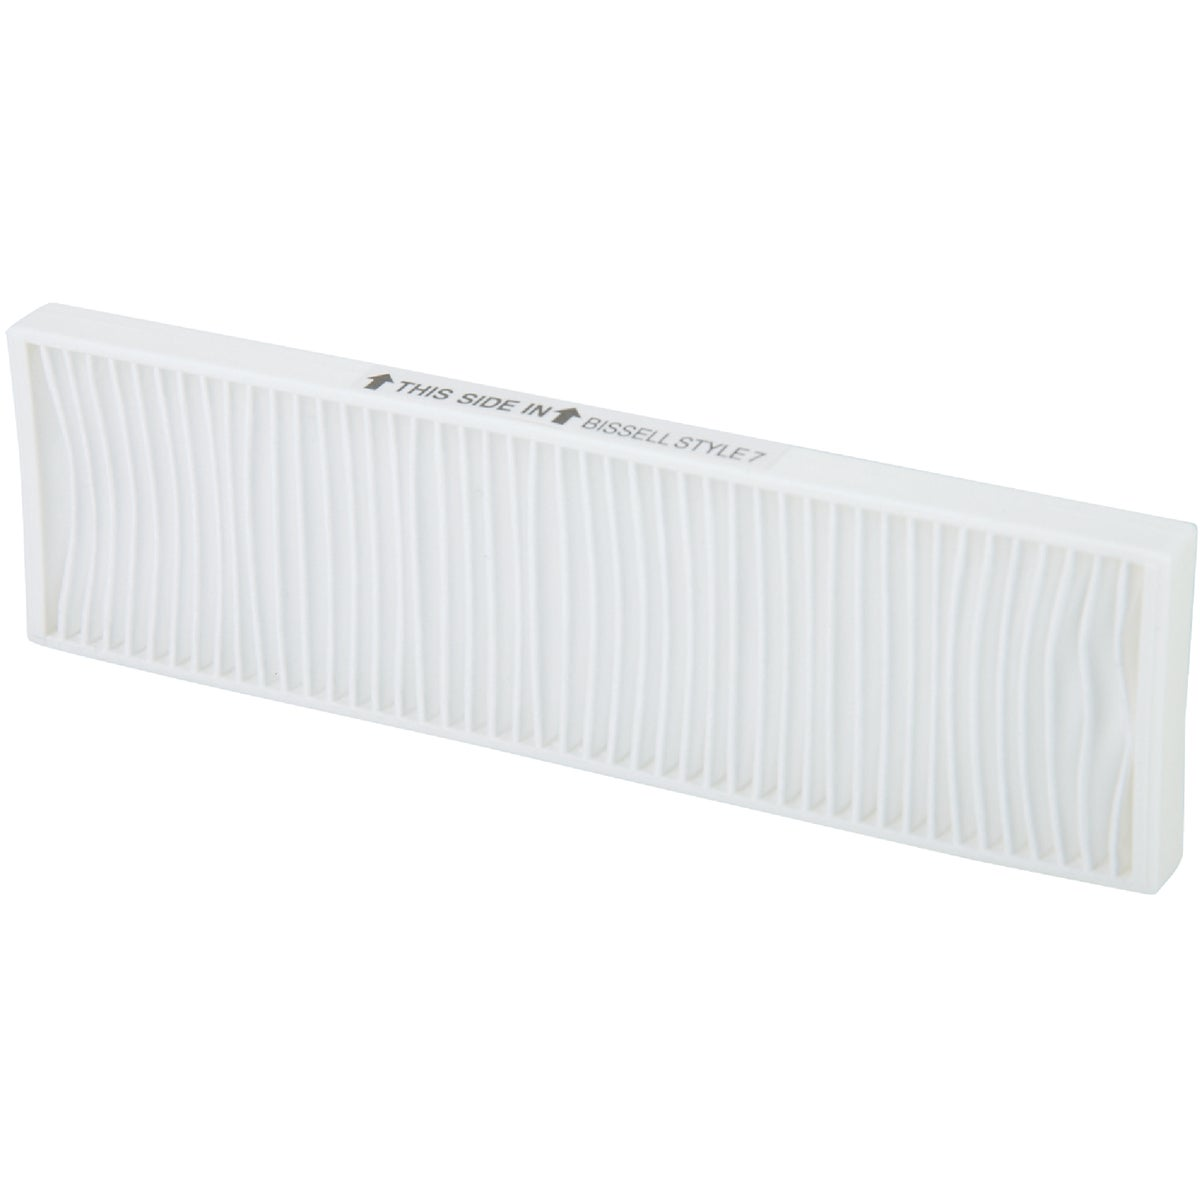 STYLE 7 HEPA FILTER - 32076 by Bissell Homecare Int